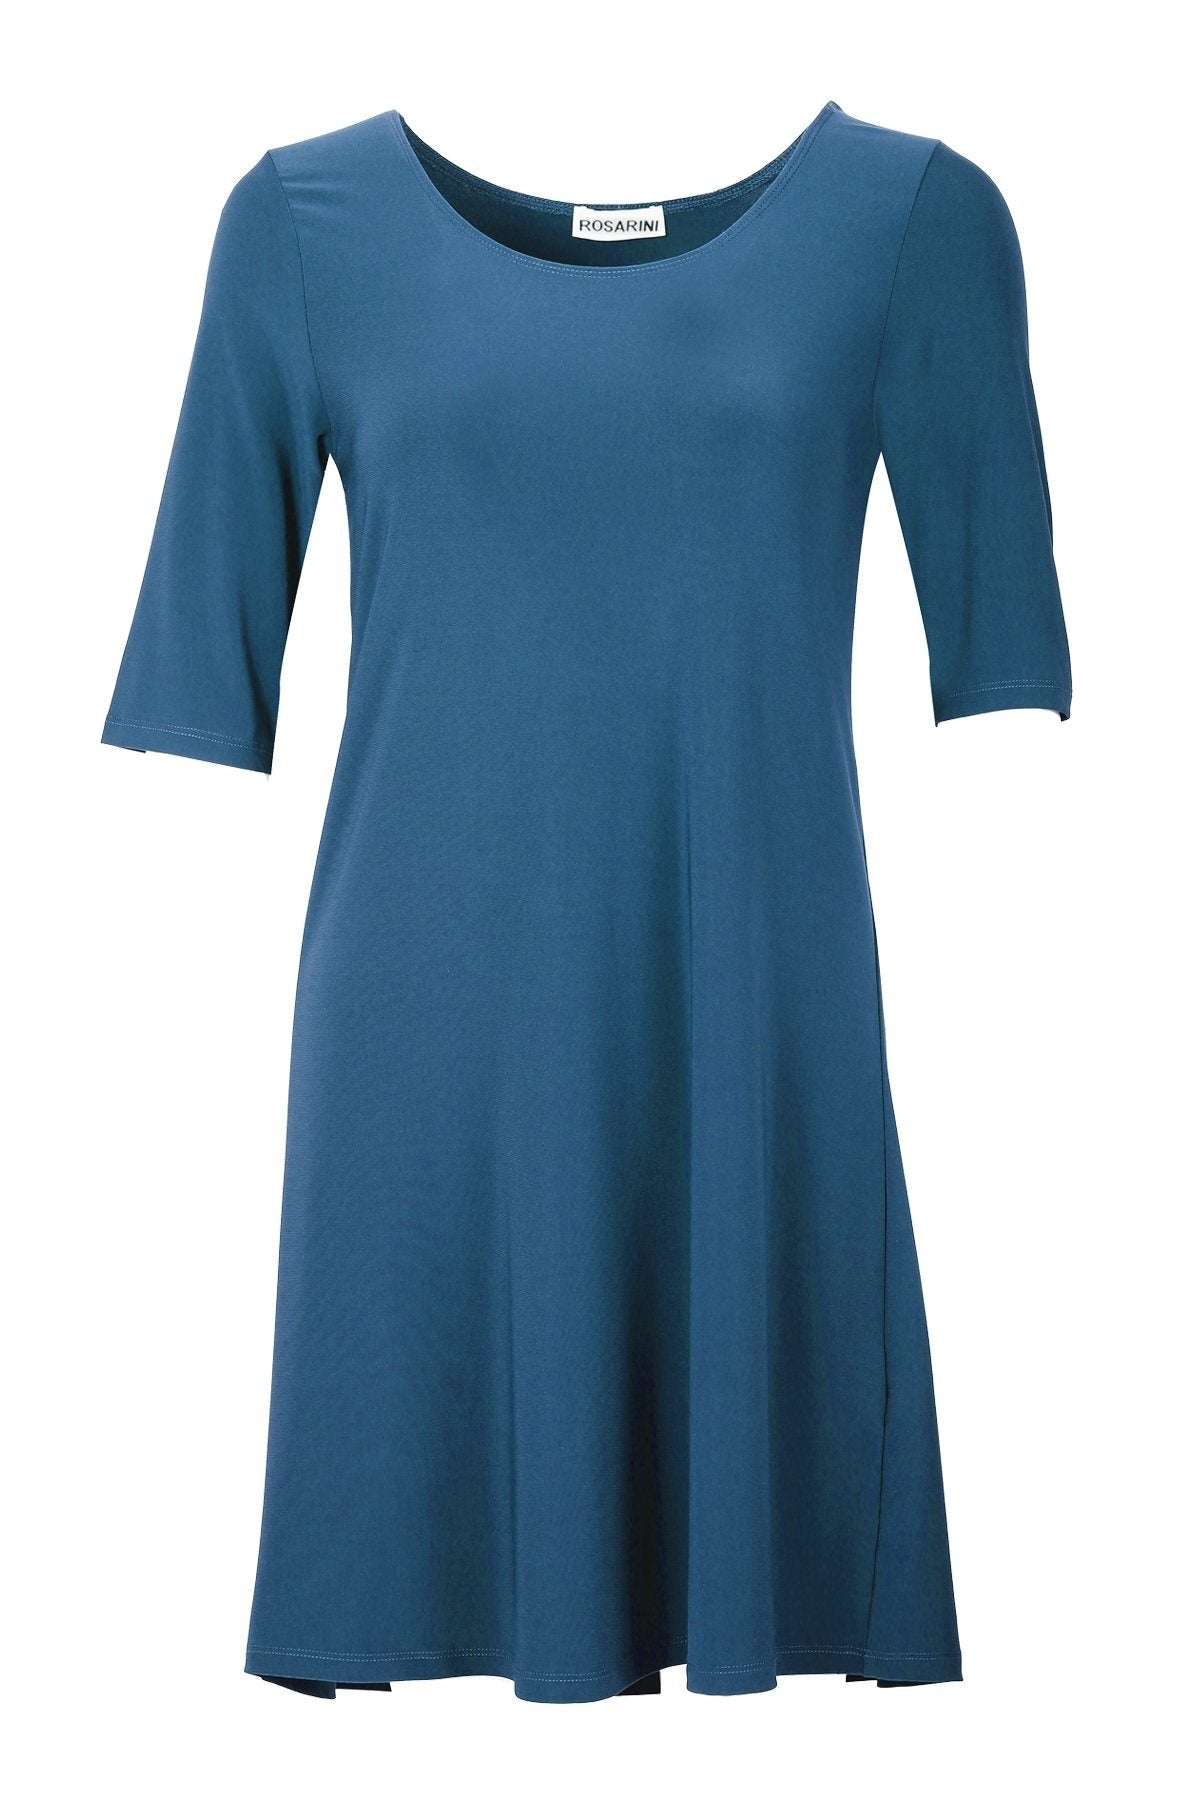 A-Line Top Teal